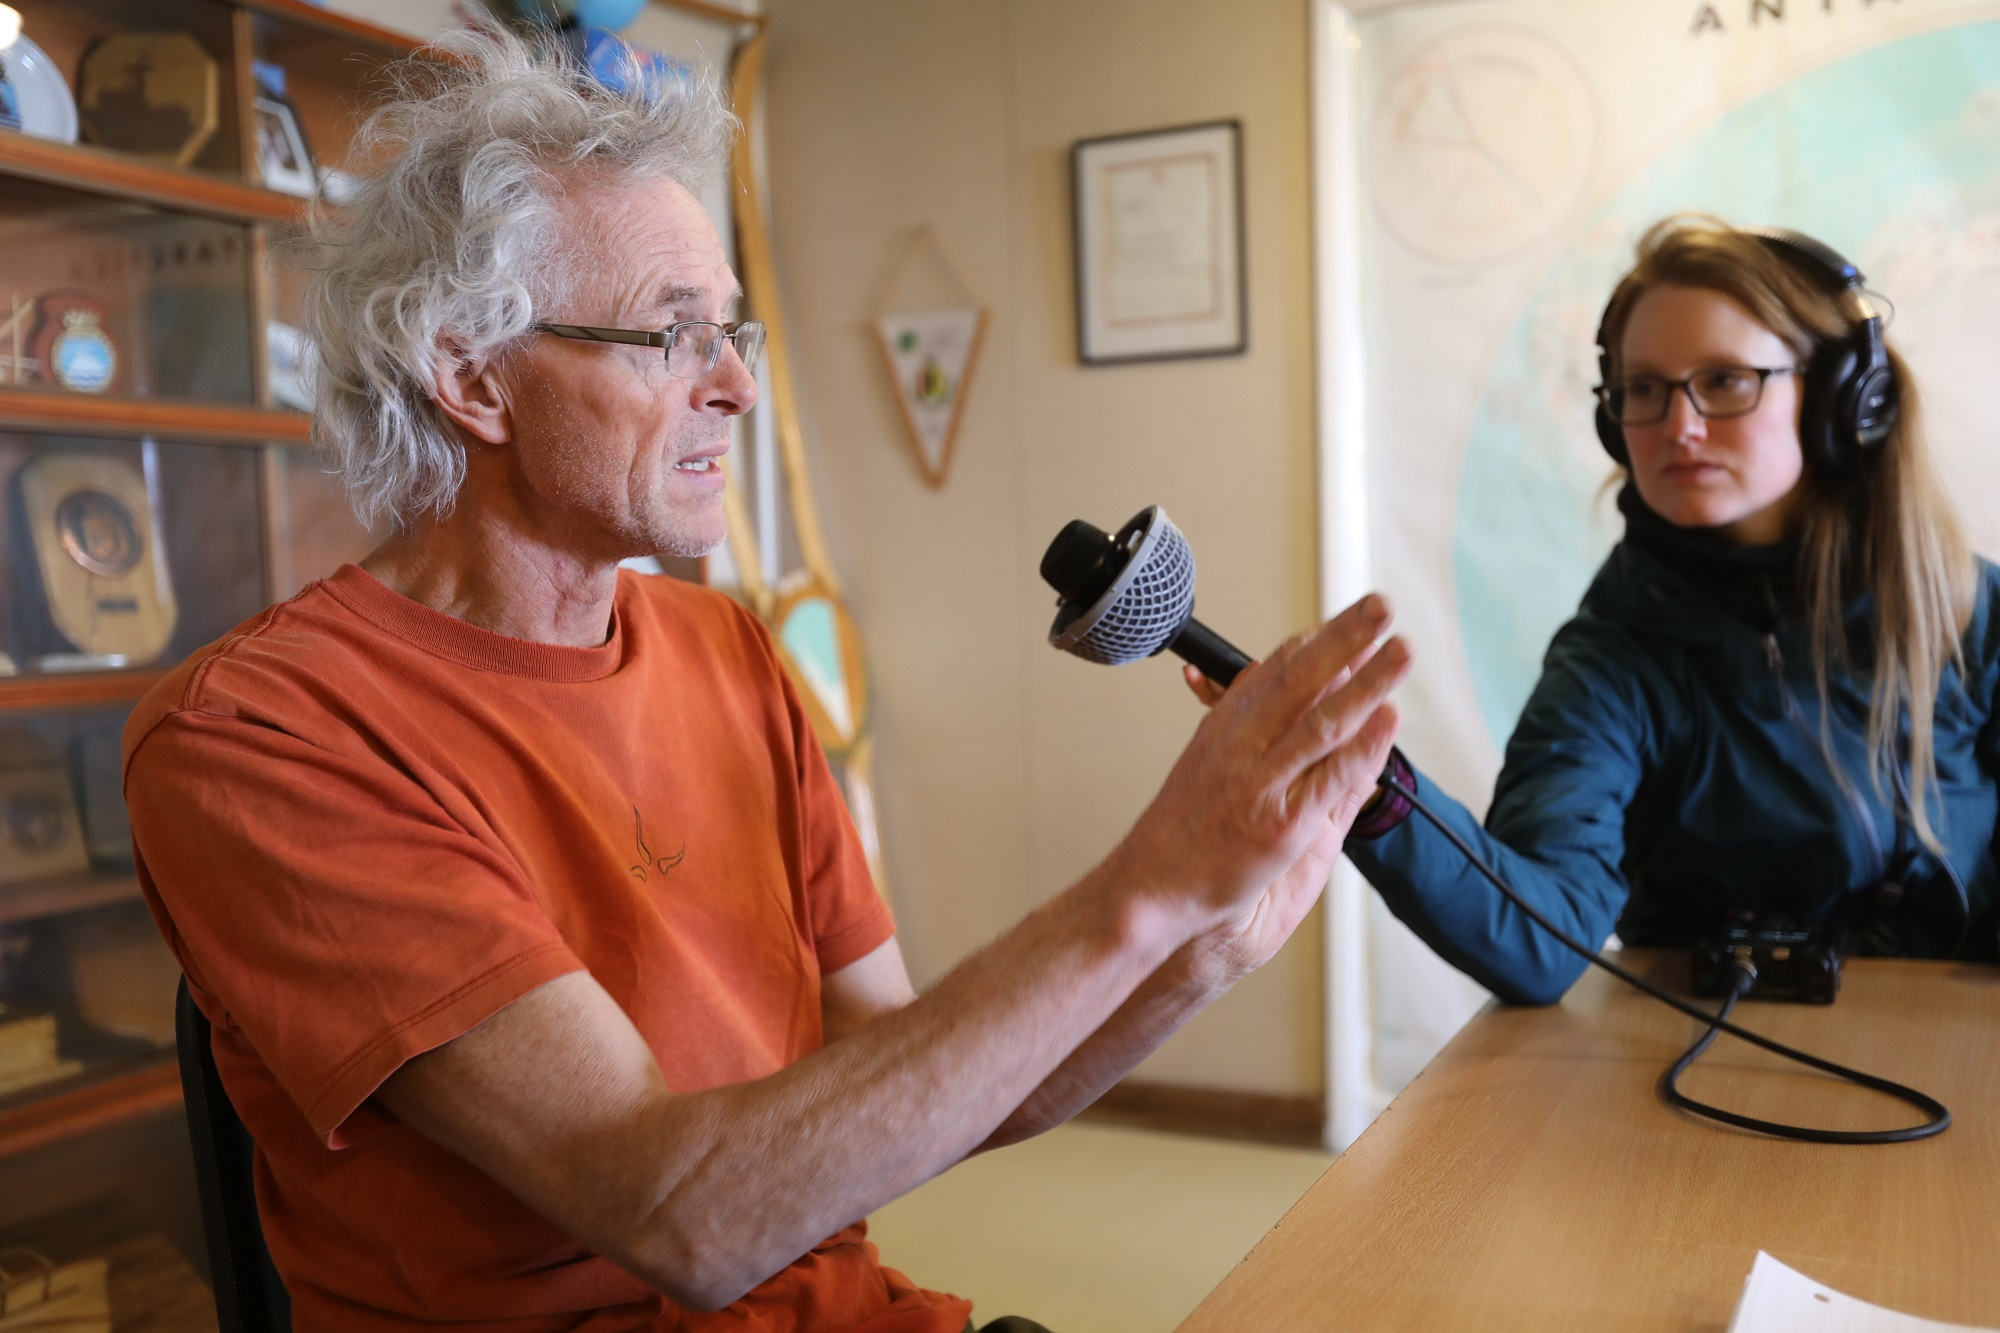 Researcher Andy Smith speaks with journalist Carolyn Beeler at Rothera Station. Photo credit: Linda Welzenbach